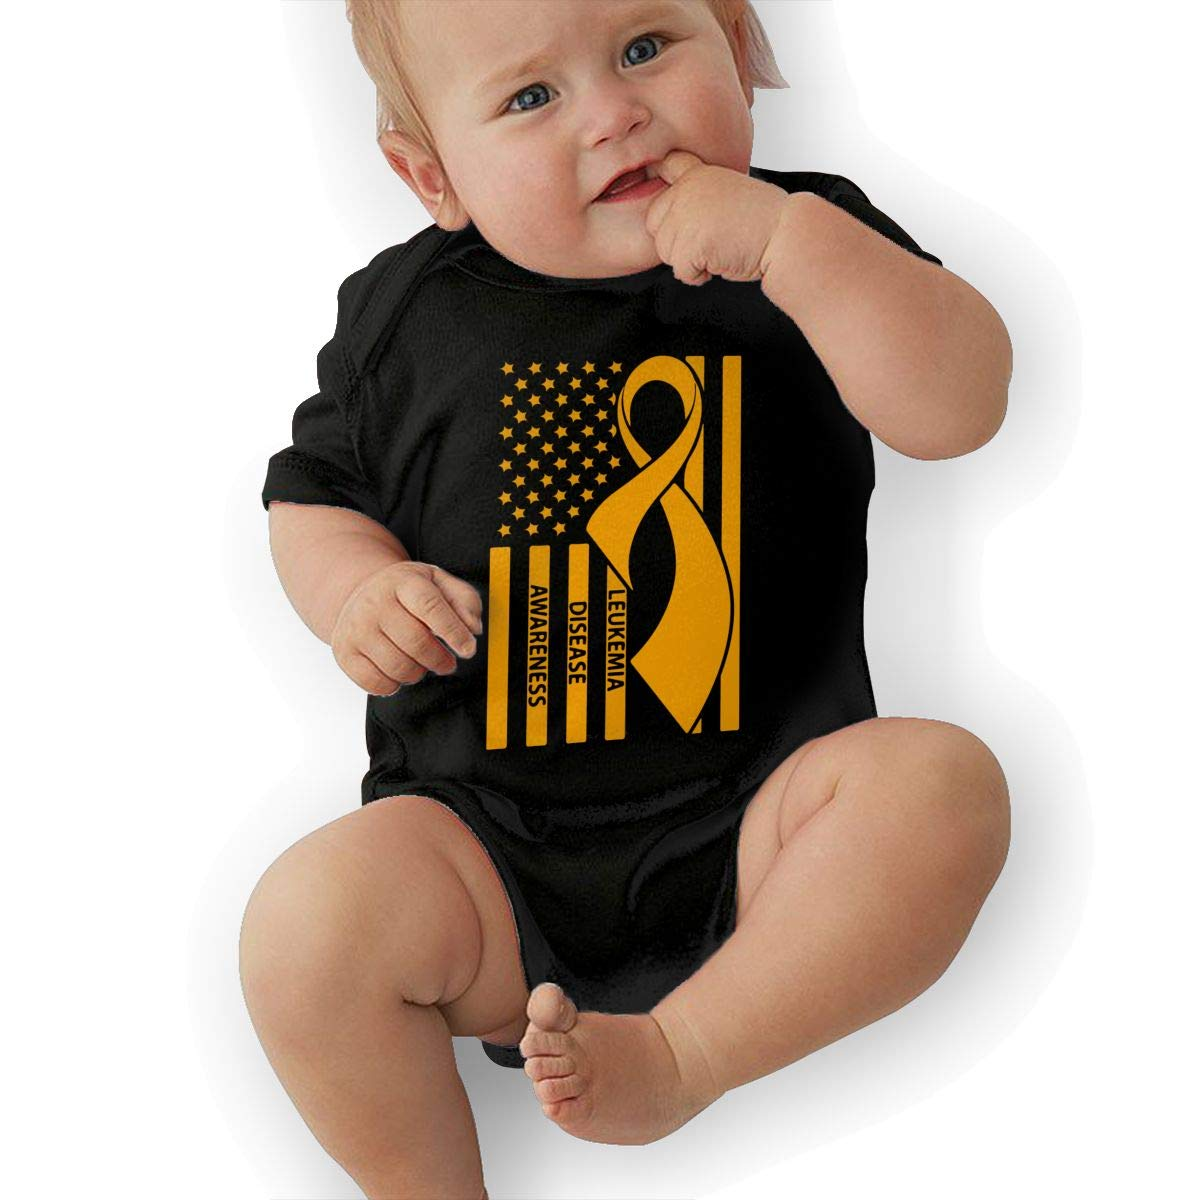 U88oi-8 Short Sleeve Cotton Bodysuit for Baby Girls Boys Cute Leukemia Disease Awareness Crawler